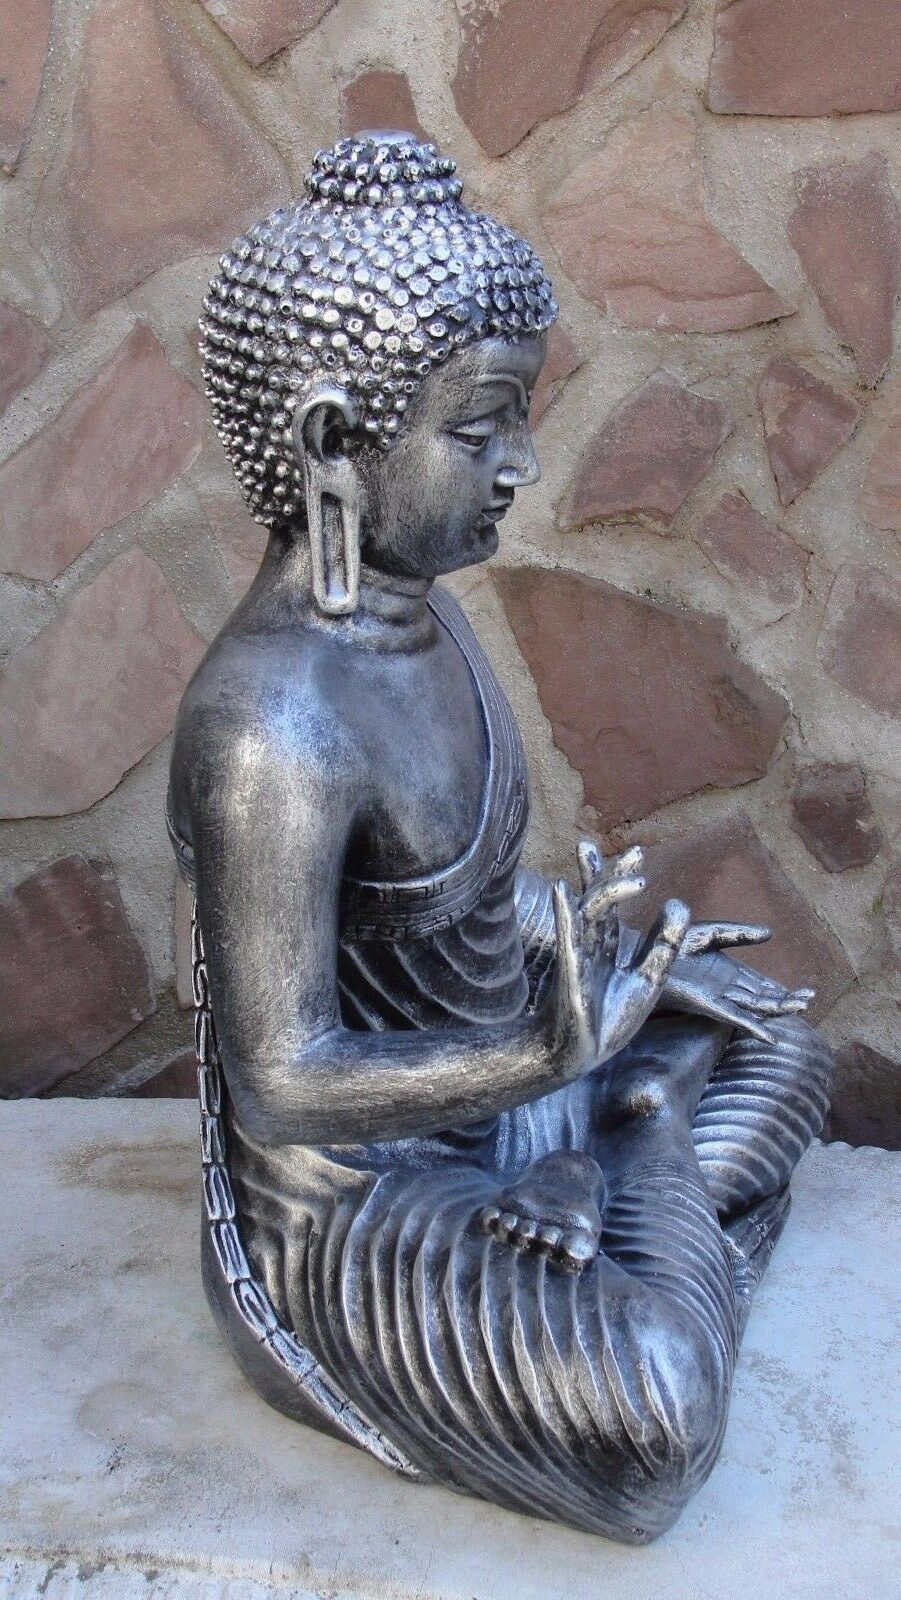 buddha gro statue feng shui garten figur wetterfest deko tempelw chter a s eur 59 00. Black Bedroom Furniture Sets. Home Design Ideas